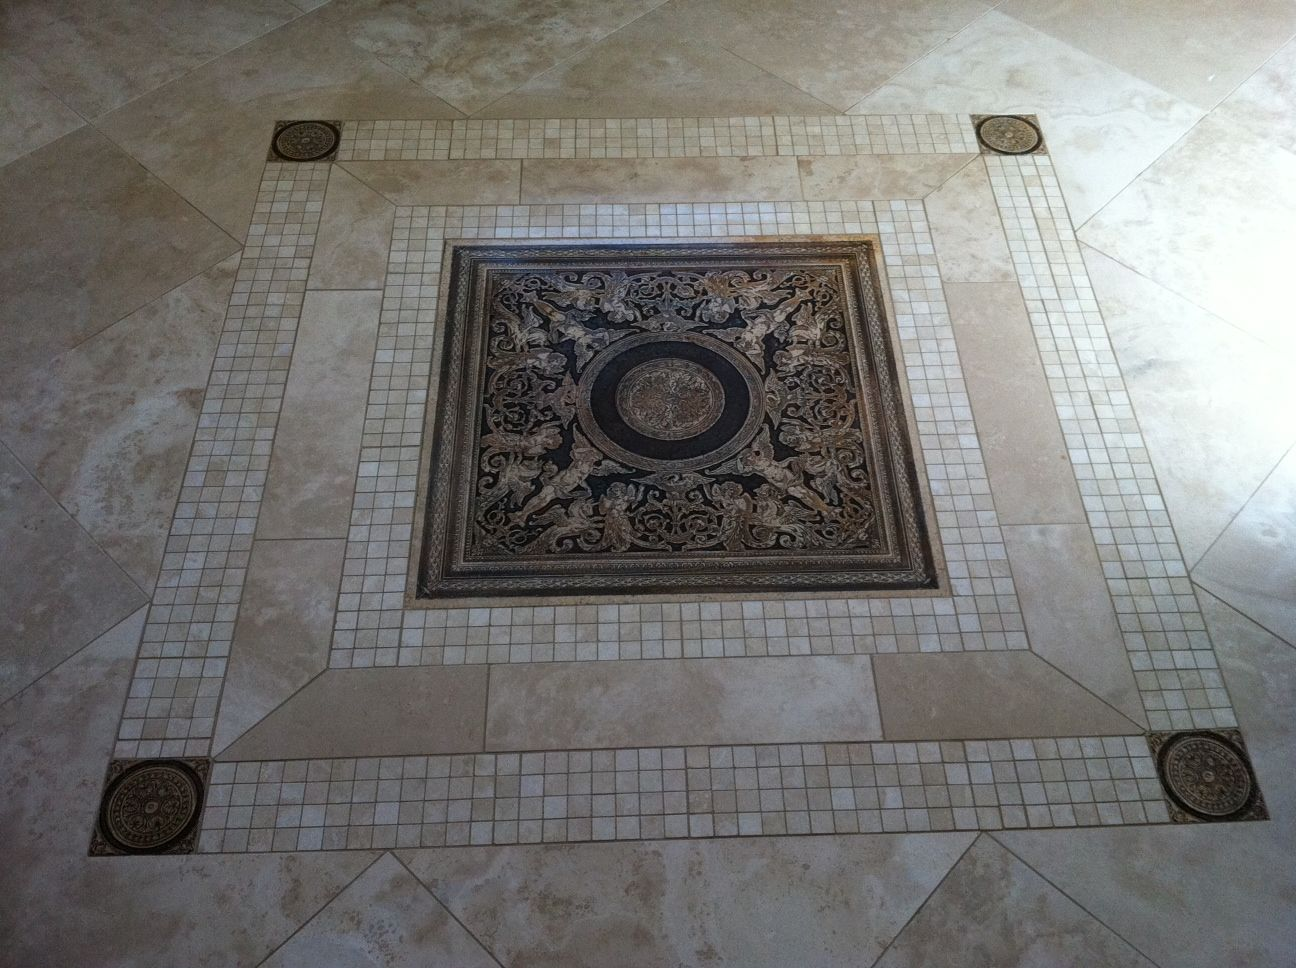 Unique tile floor designs published january 9 2013 at 1296 unique tile floor designs published january 9 2013 at 1296 968 in custom dailygadgetfo Choice Image